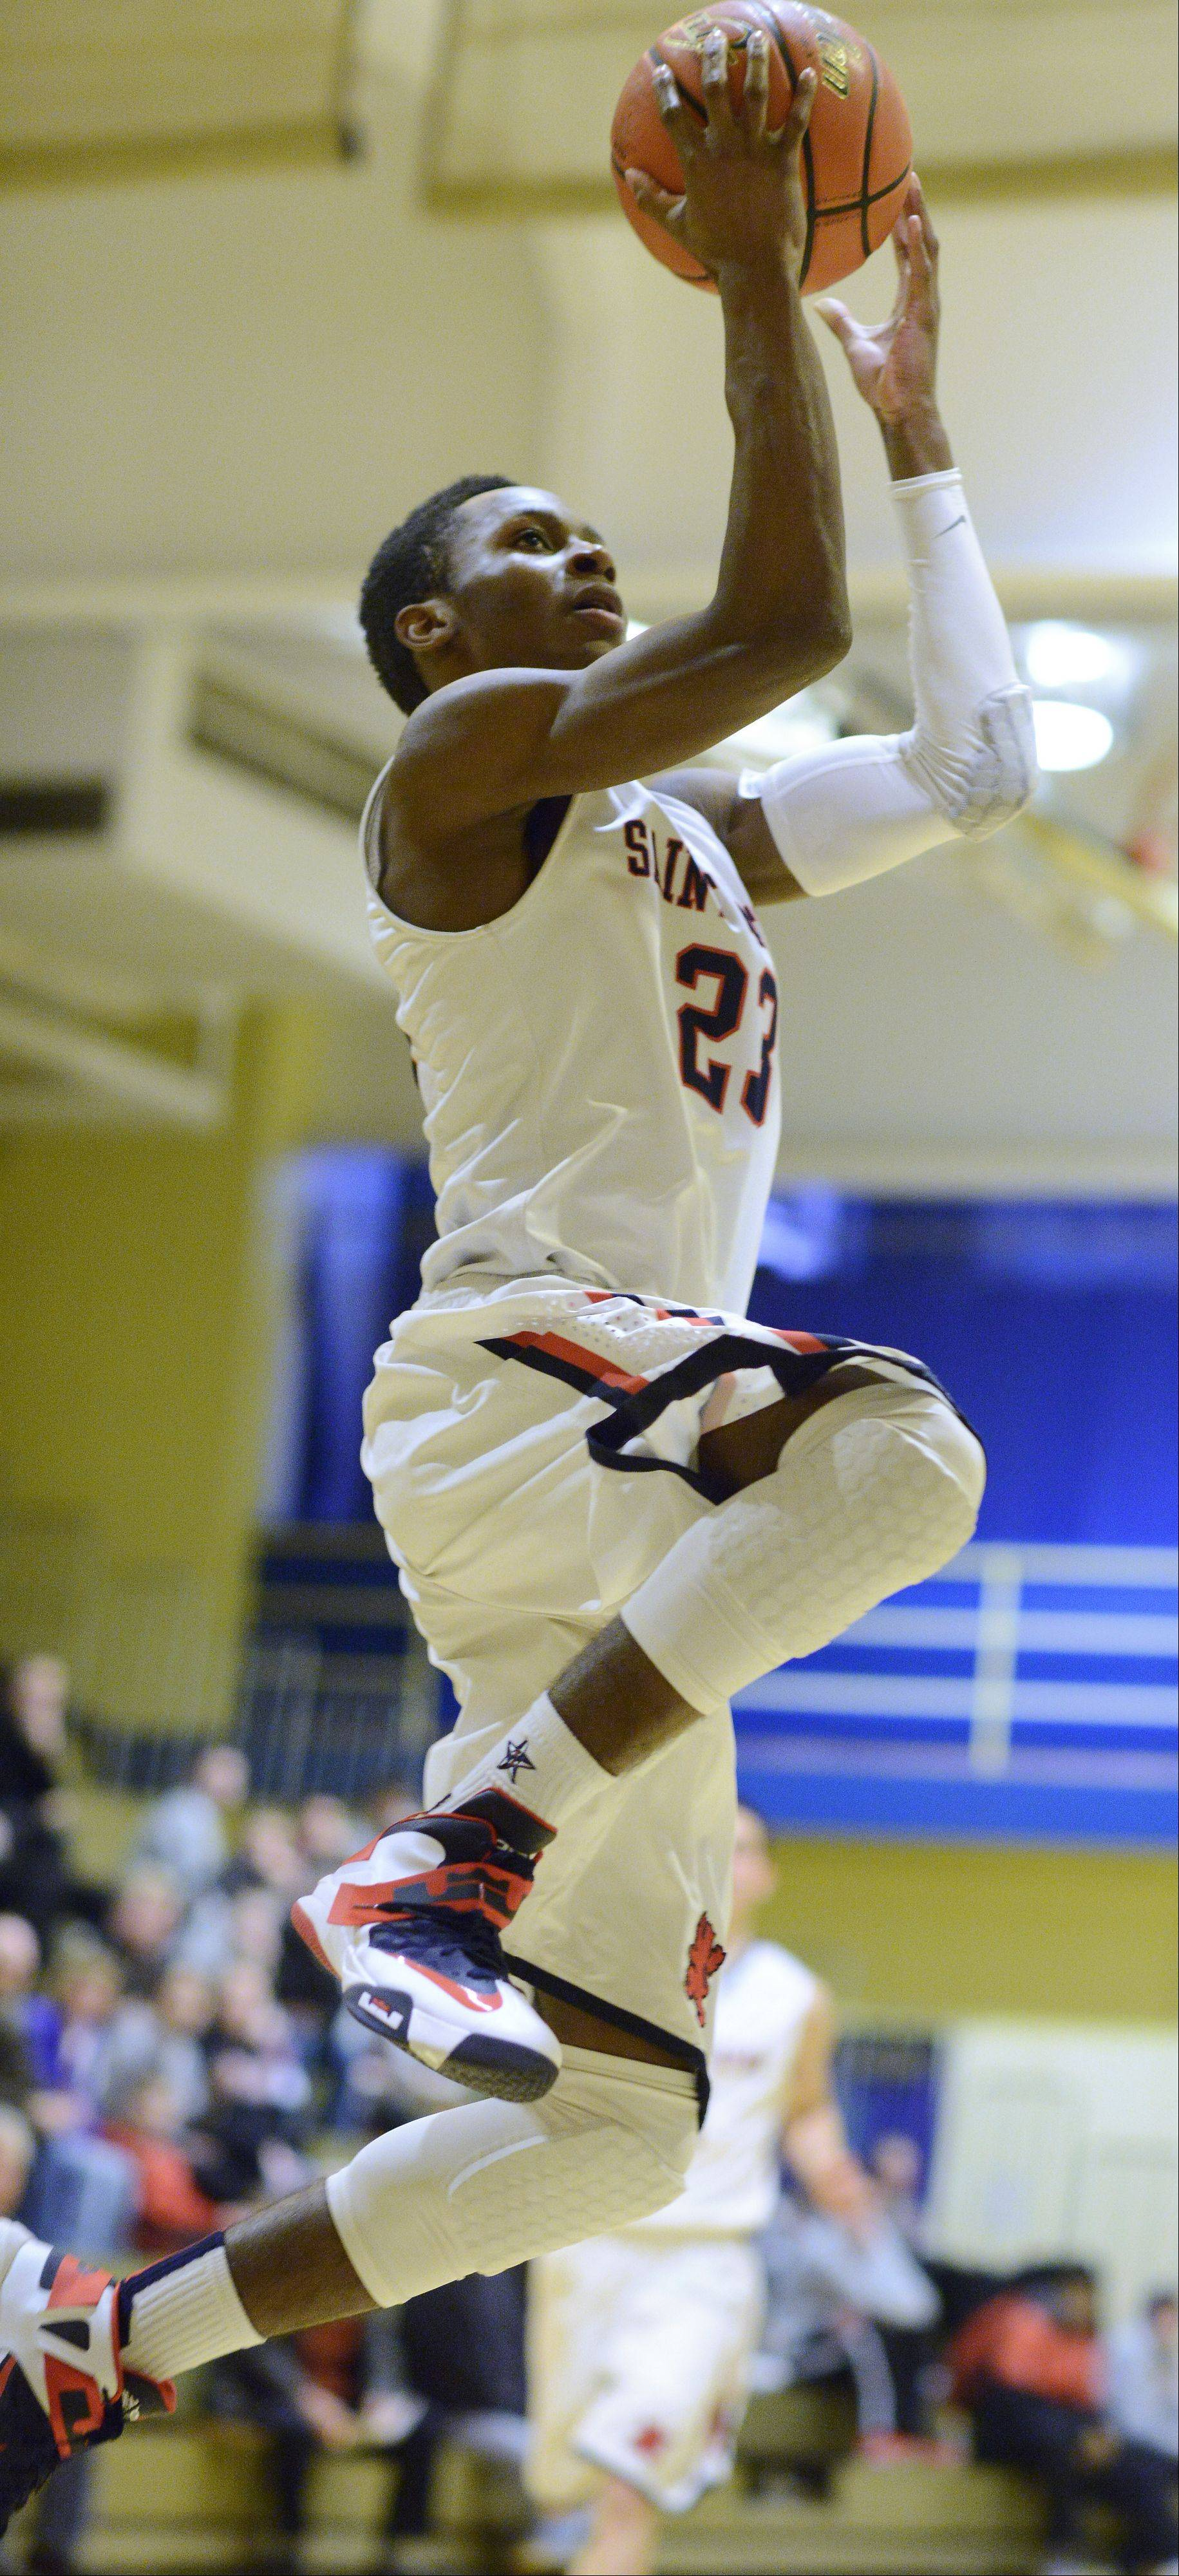 St. Viator's Ore Arogundade drives for a layup against Niles North during Friday's semifinal of the Wheeling Tournament.